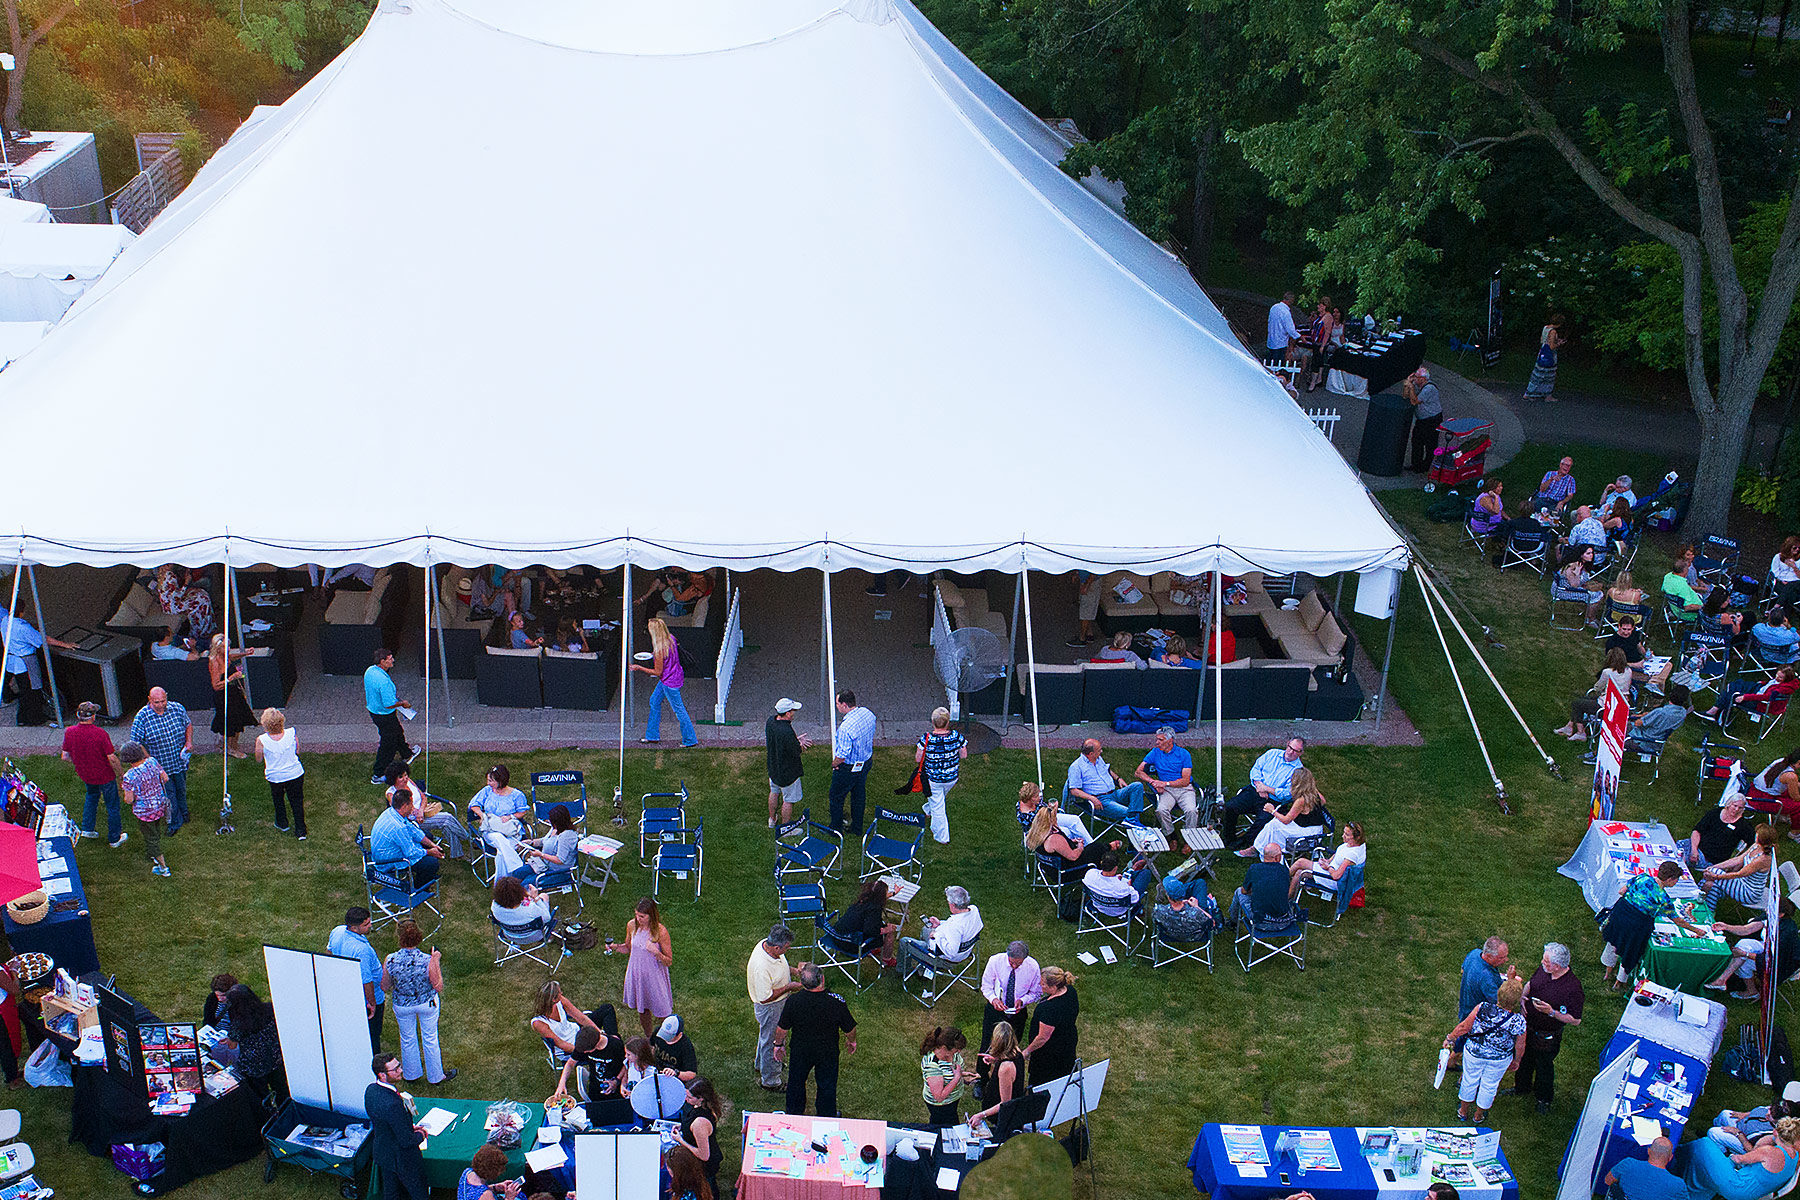 featured image for the ravinia festival image gallery